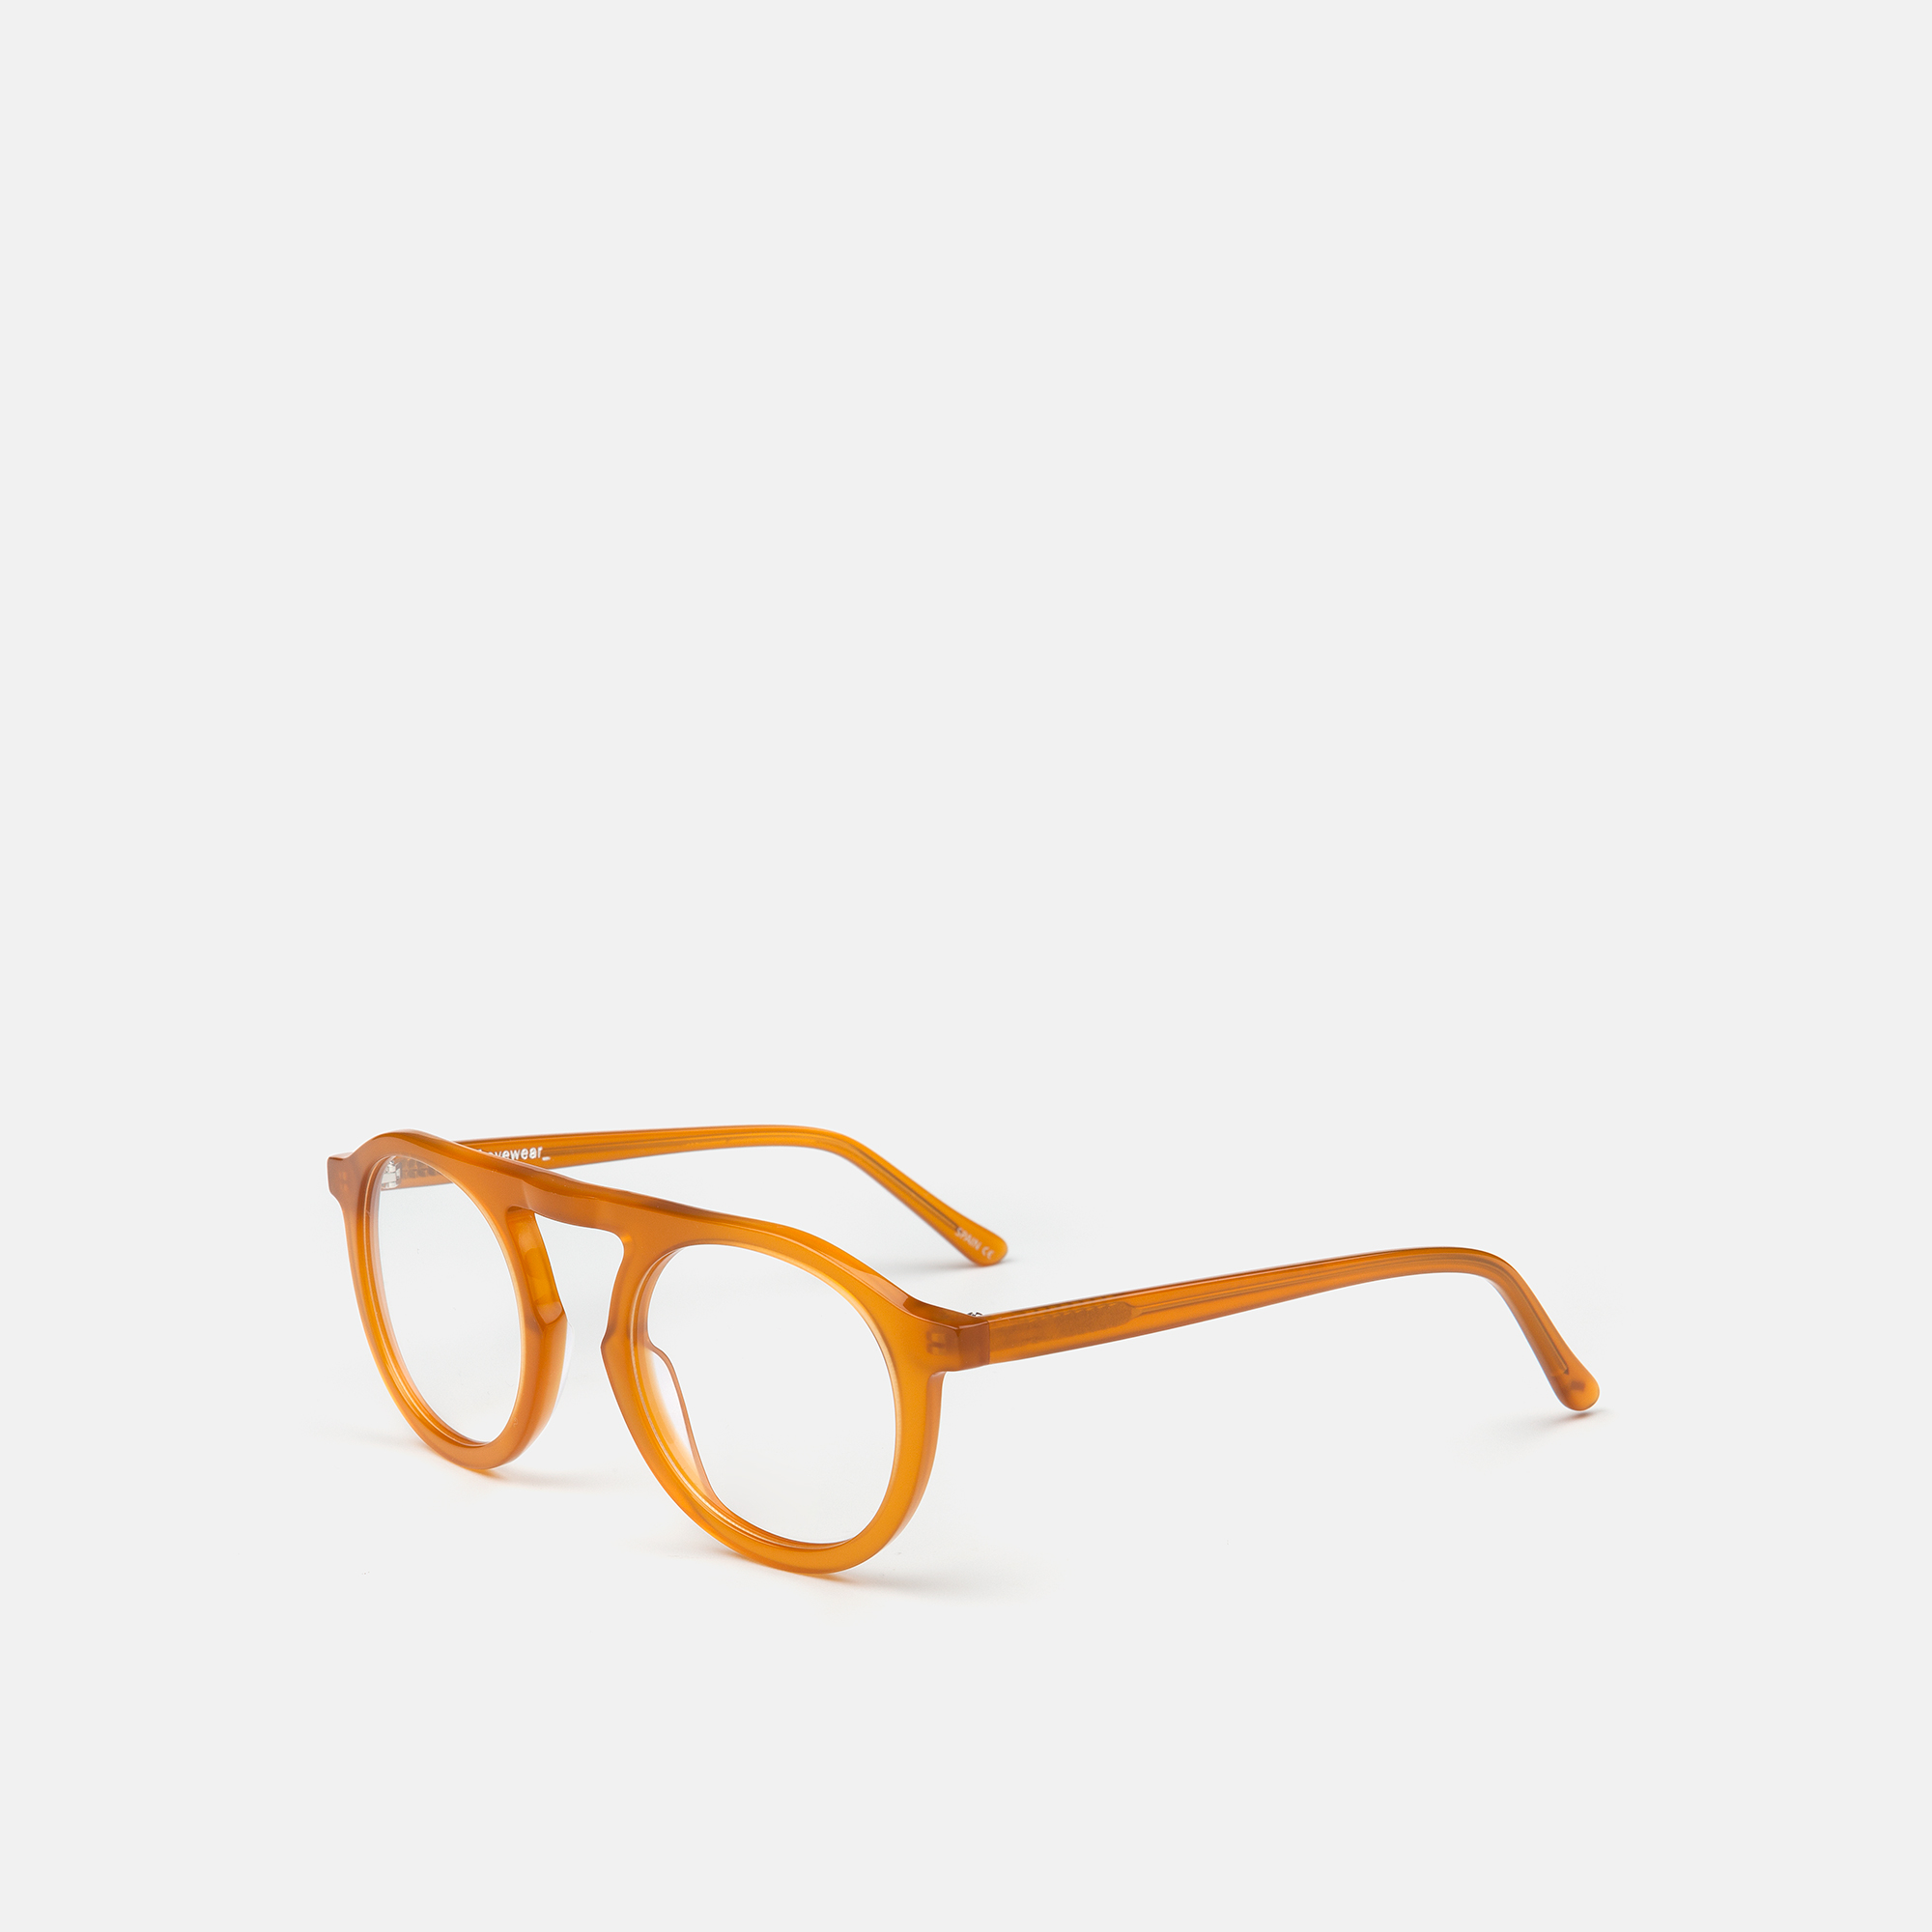 mó geek 60A B, light brown, hi-res